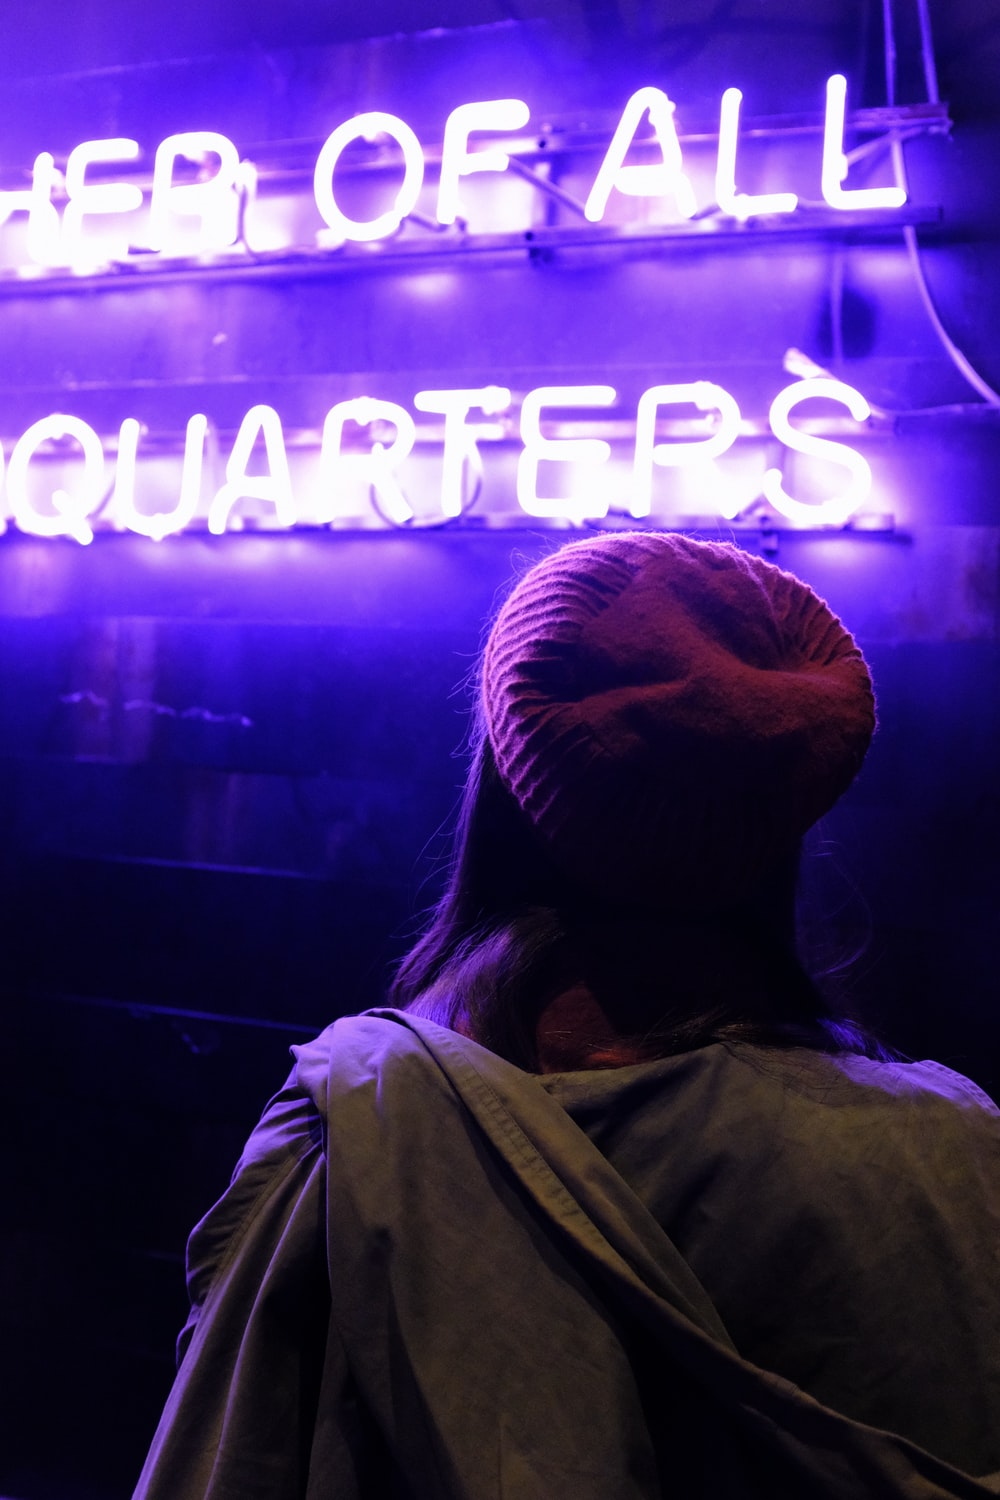 person wearing maroon knit cap in front of neon light signage